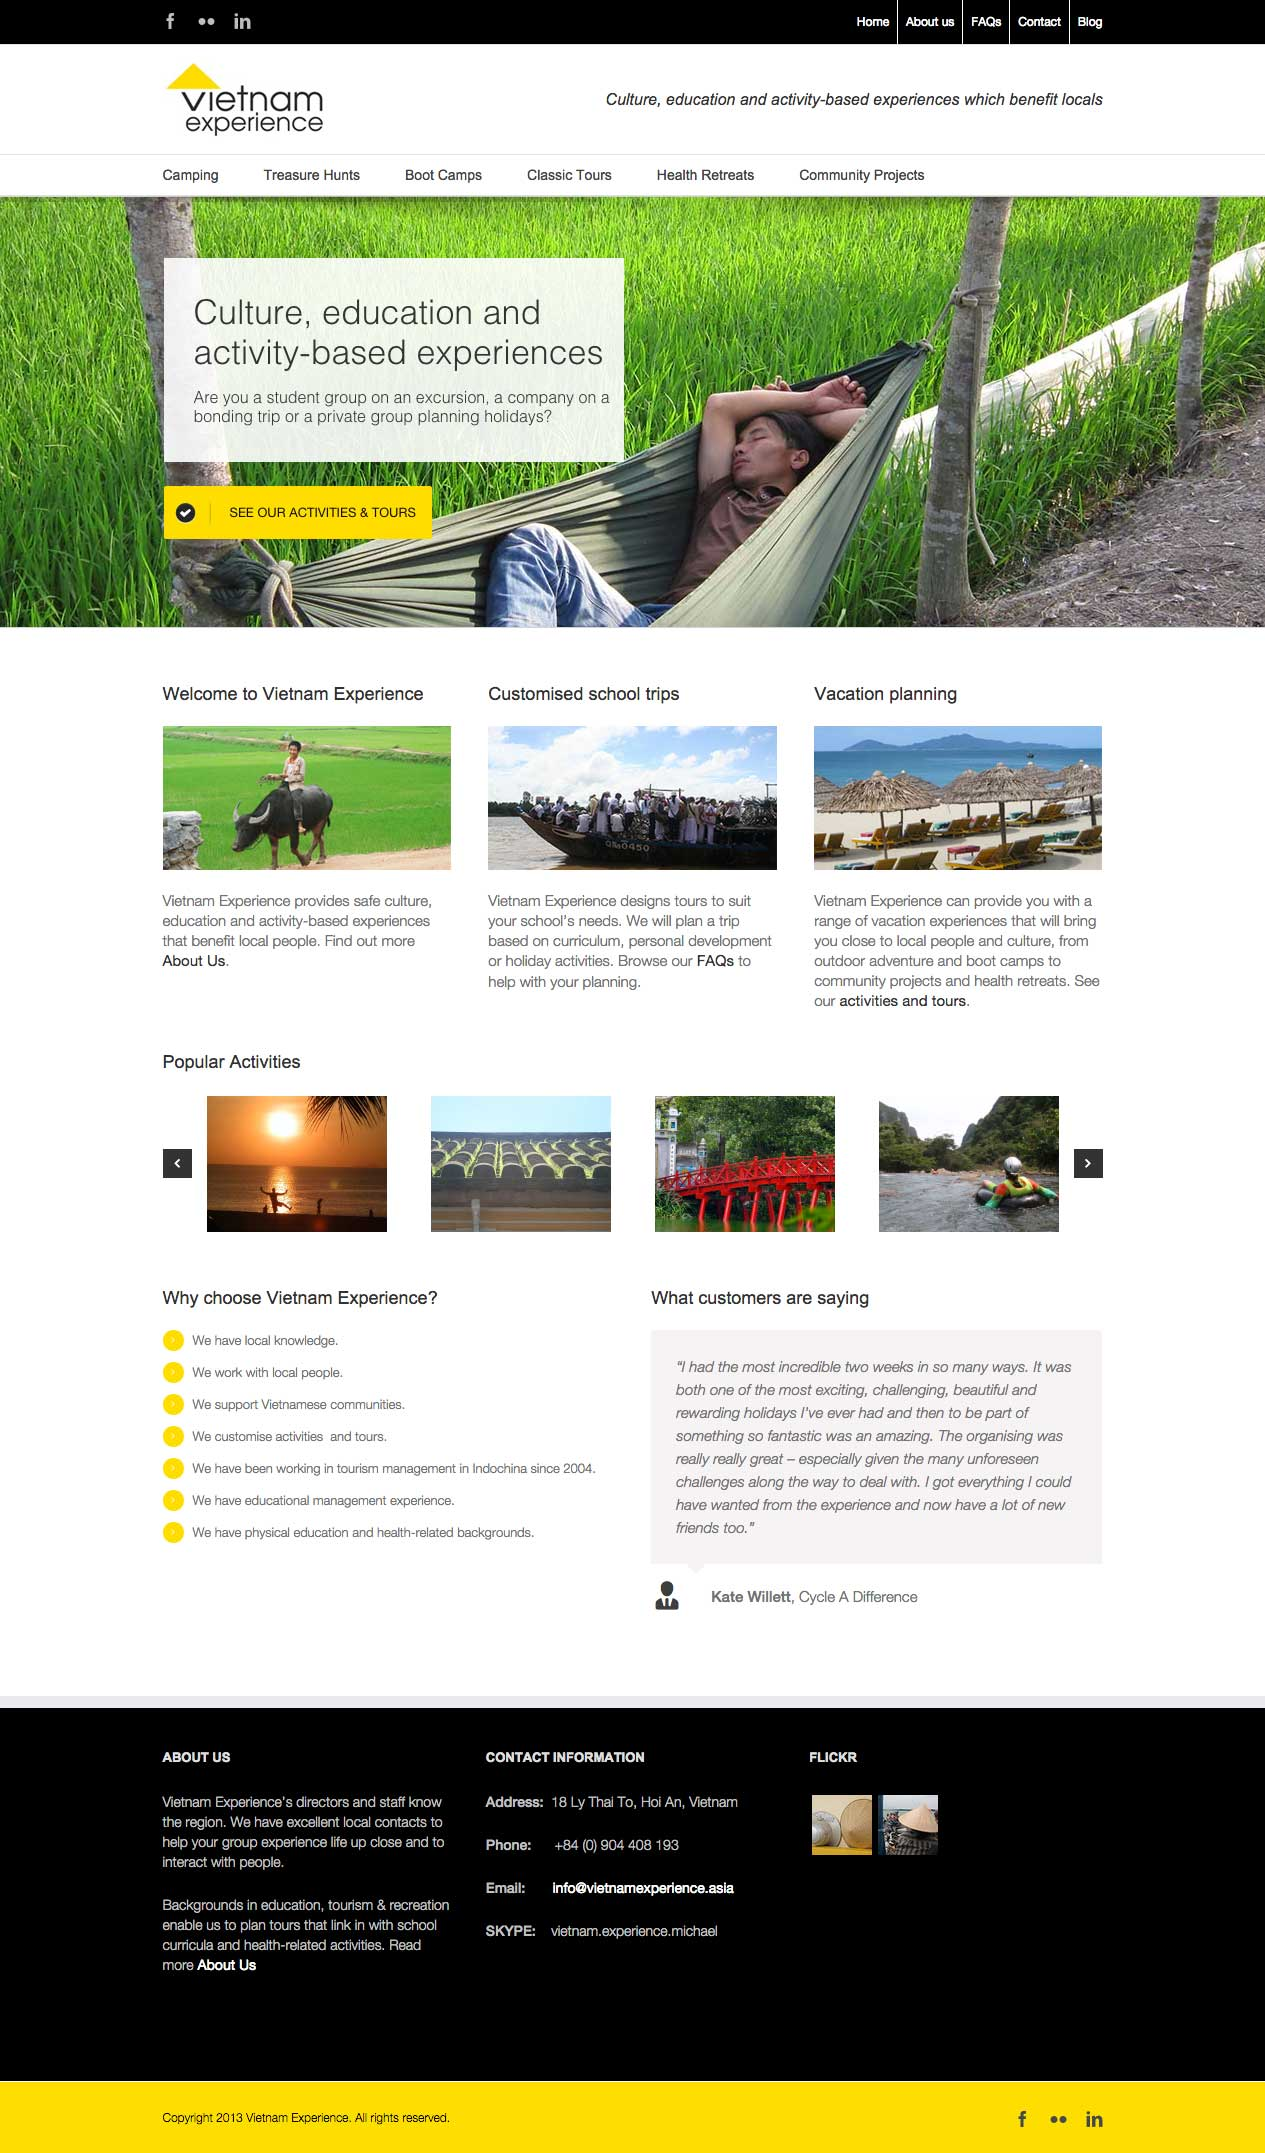 Vietnam Experience website